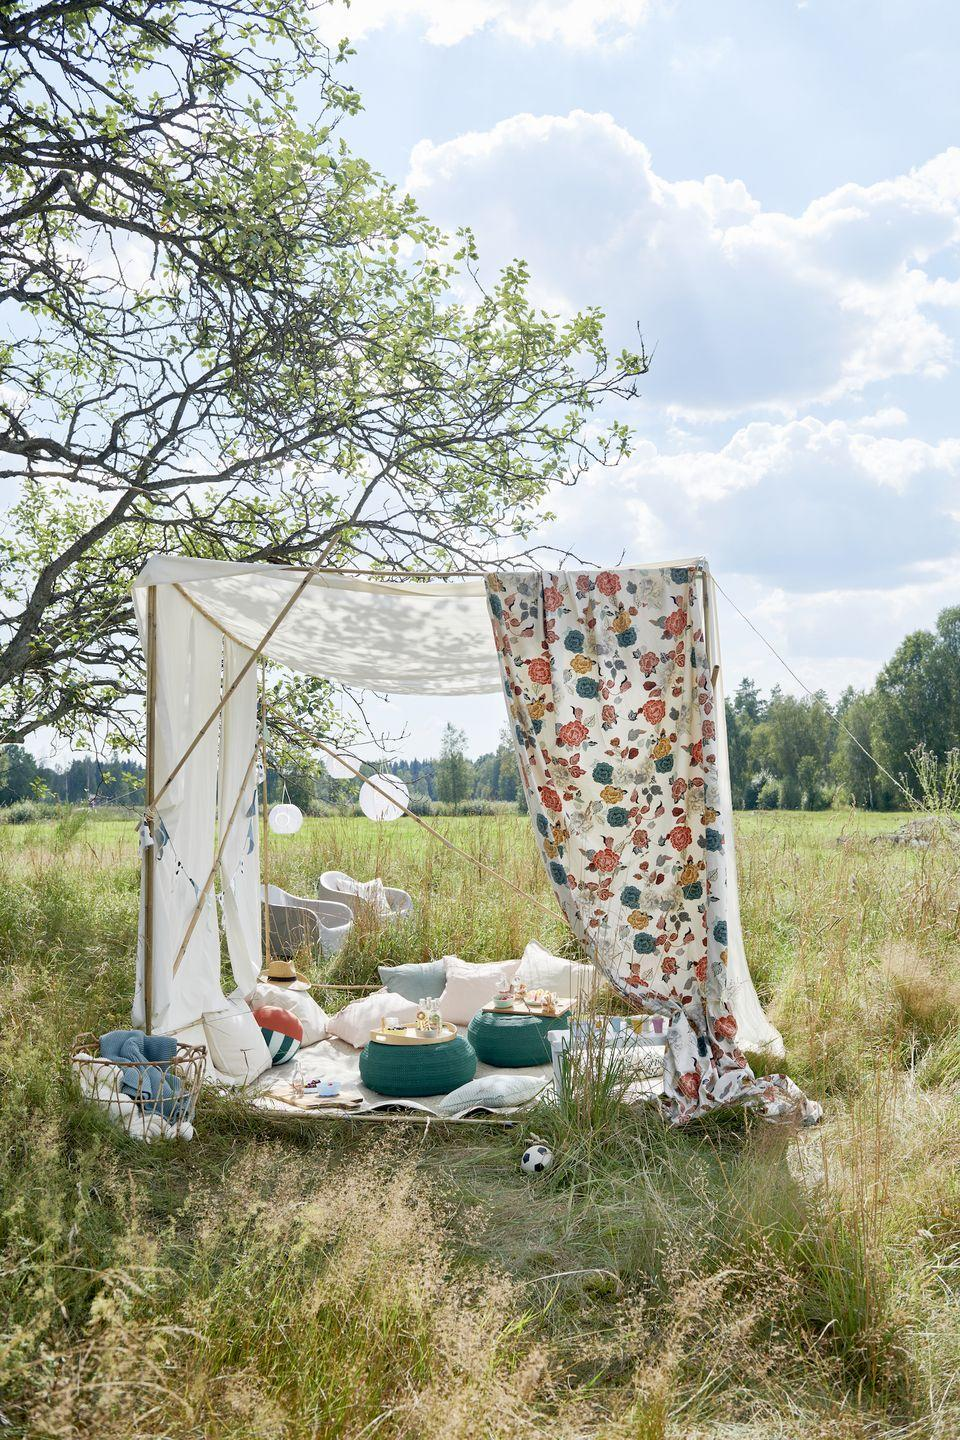 """<p>Dreaming of a lazy garden <a href=""""https://www.countryliving.com/uk/wildlife/countryside/a32891049/plastic-free-picnic/"""" rel=""""nofollow noopener"""" target=""""_blank"""" data-ylk=""""slk:picnic"""" class=""""link rapid-noclick-resp"""">picnic</a>? IKEA's stunning new range includes everything you need for alfresco dining, from a charcoal barbecue to cooking utensils. As part of their 'Everyday Celebrations' trend, you'll be sure to find stylish must-haves at purse-friendly prices.</p><p>""""Cooking is a wonderful way to unwind, particularly in the sunshine and open air,"""" Rosheen Forbes, Commercial Activity & Events Leader at IKEA UK and Ireland, says. """"When it comes to dining, it's all about the simple pleasures and making things effortless.""""</p><p><strong>READ MORE</strong>: <a href=""""https://www.countryliving.com/uk/wildlife/countryside/a32891049/plastic-free-picnic/"""" rel=""""nofollow noopener"""" target=""""_blank"""" data-ylk=""""slk:6 easy hacks for a waste-free picnic"""" class=""""link rapid-noclick-resp"""">6 easy hacks for a waste-free picnic</a></p>"""